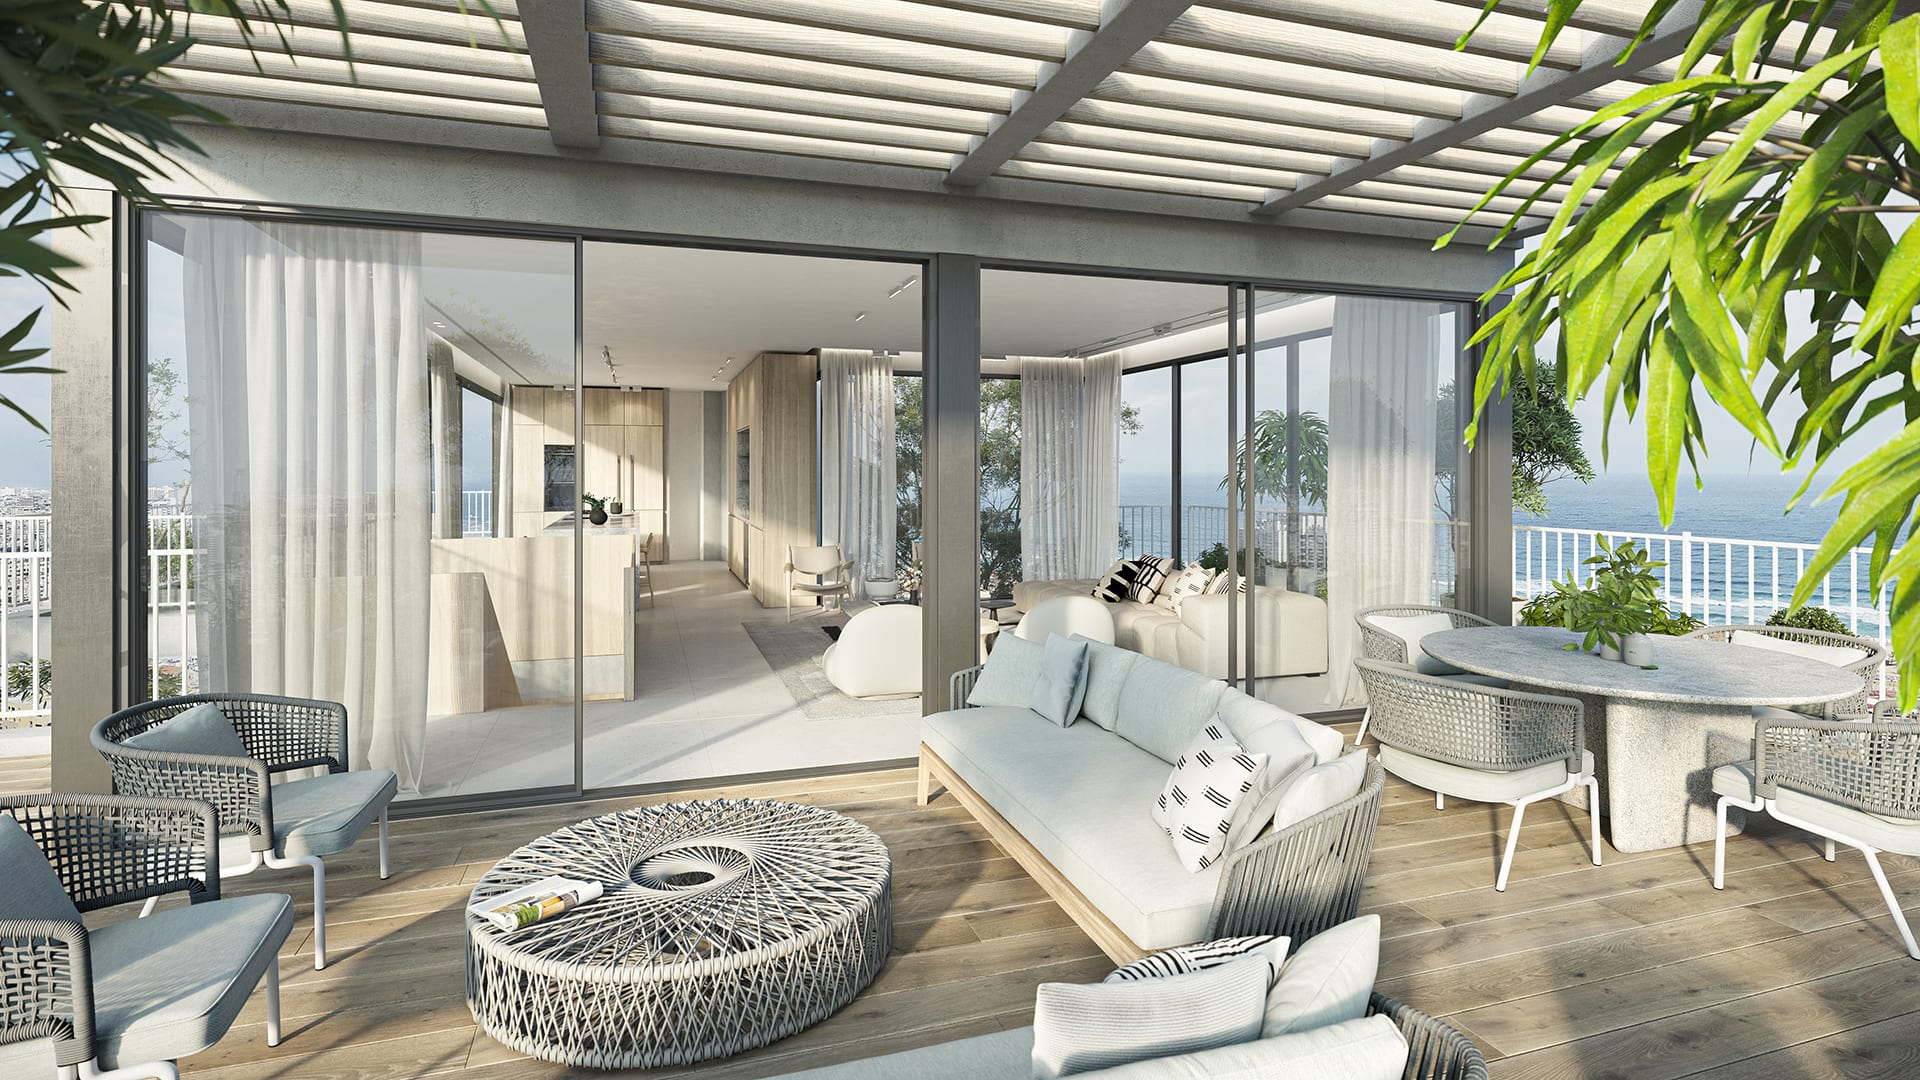 Maayan-Golan_Architectural-Visualization_interior-visualization_penthouse-balcony_interior-design-by-sharon-maayan_01